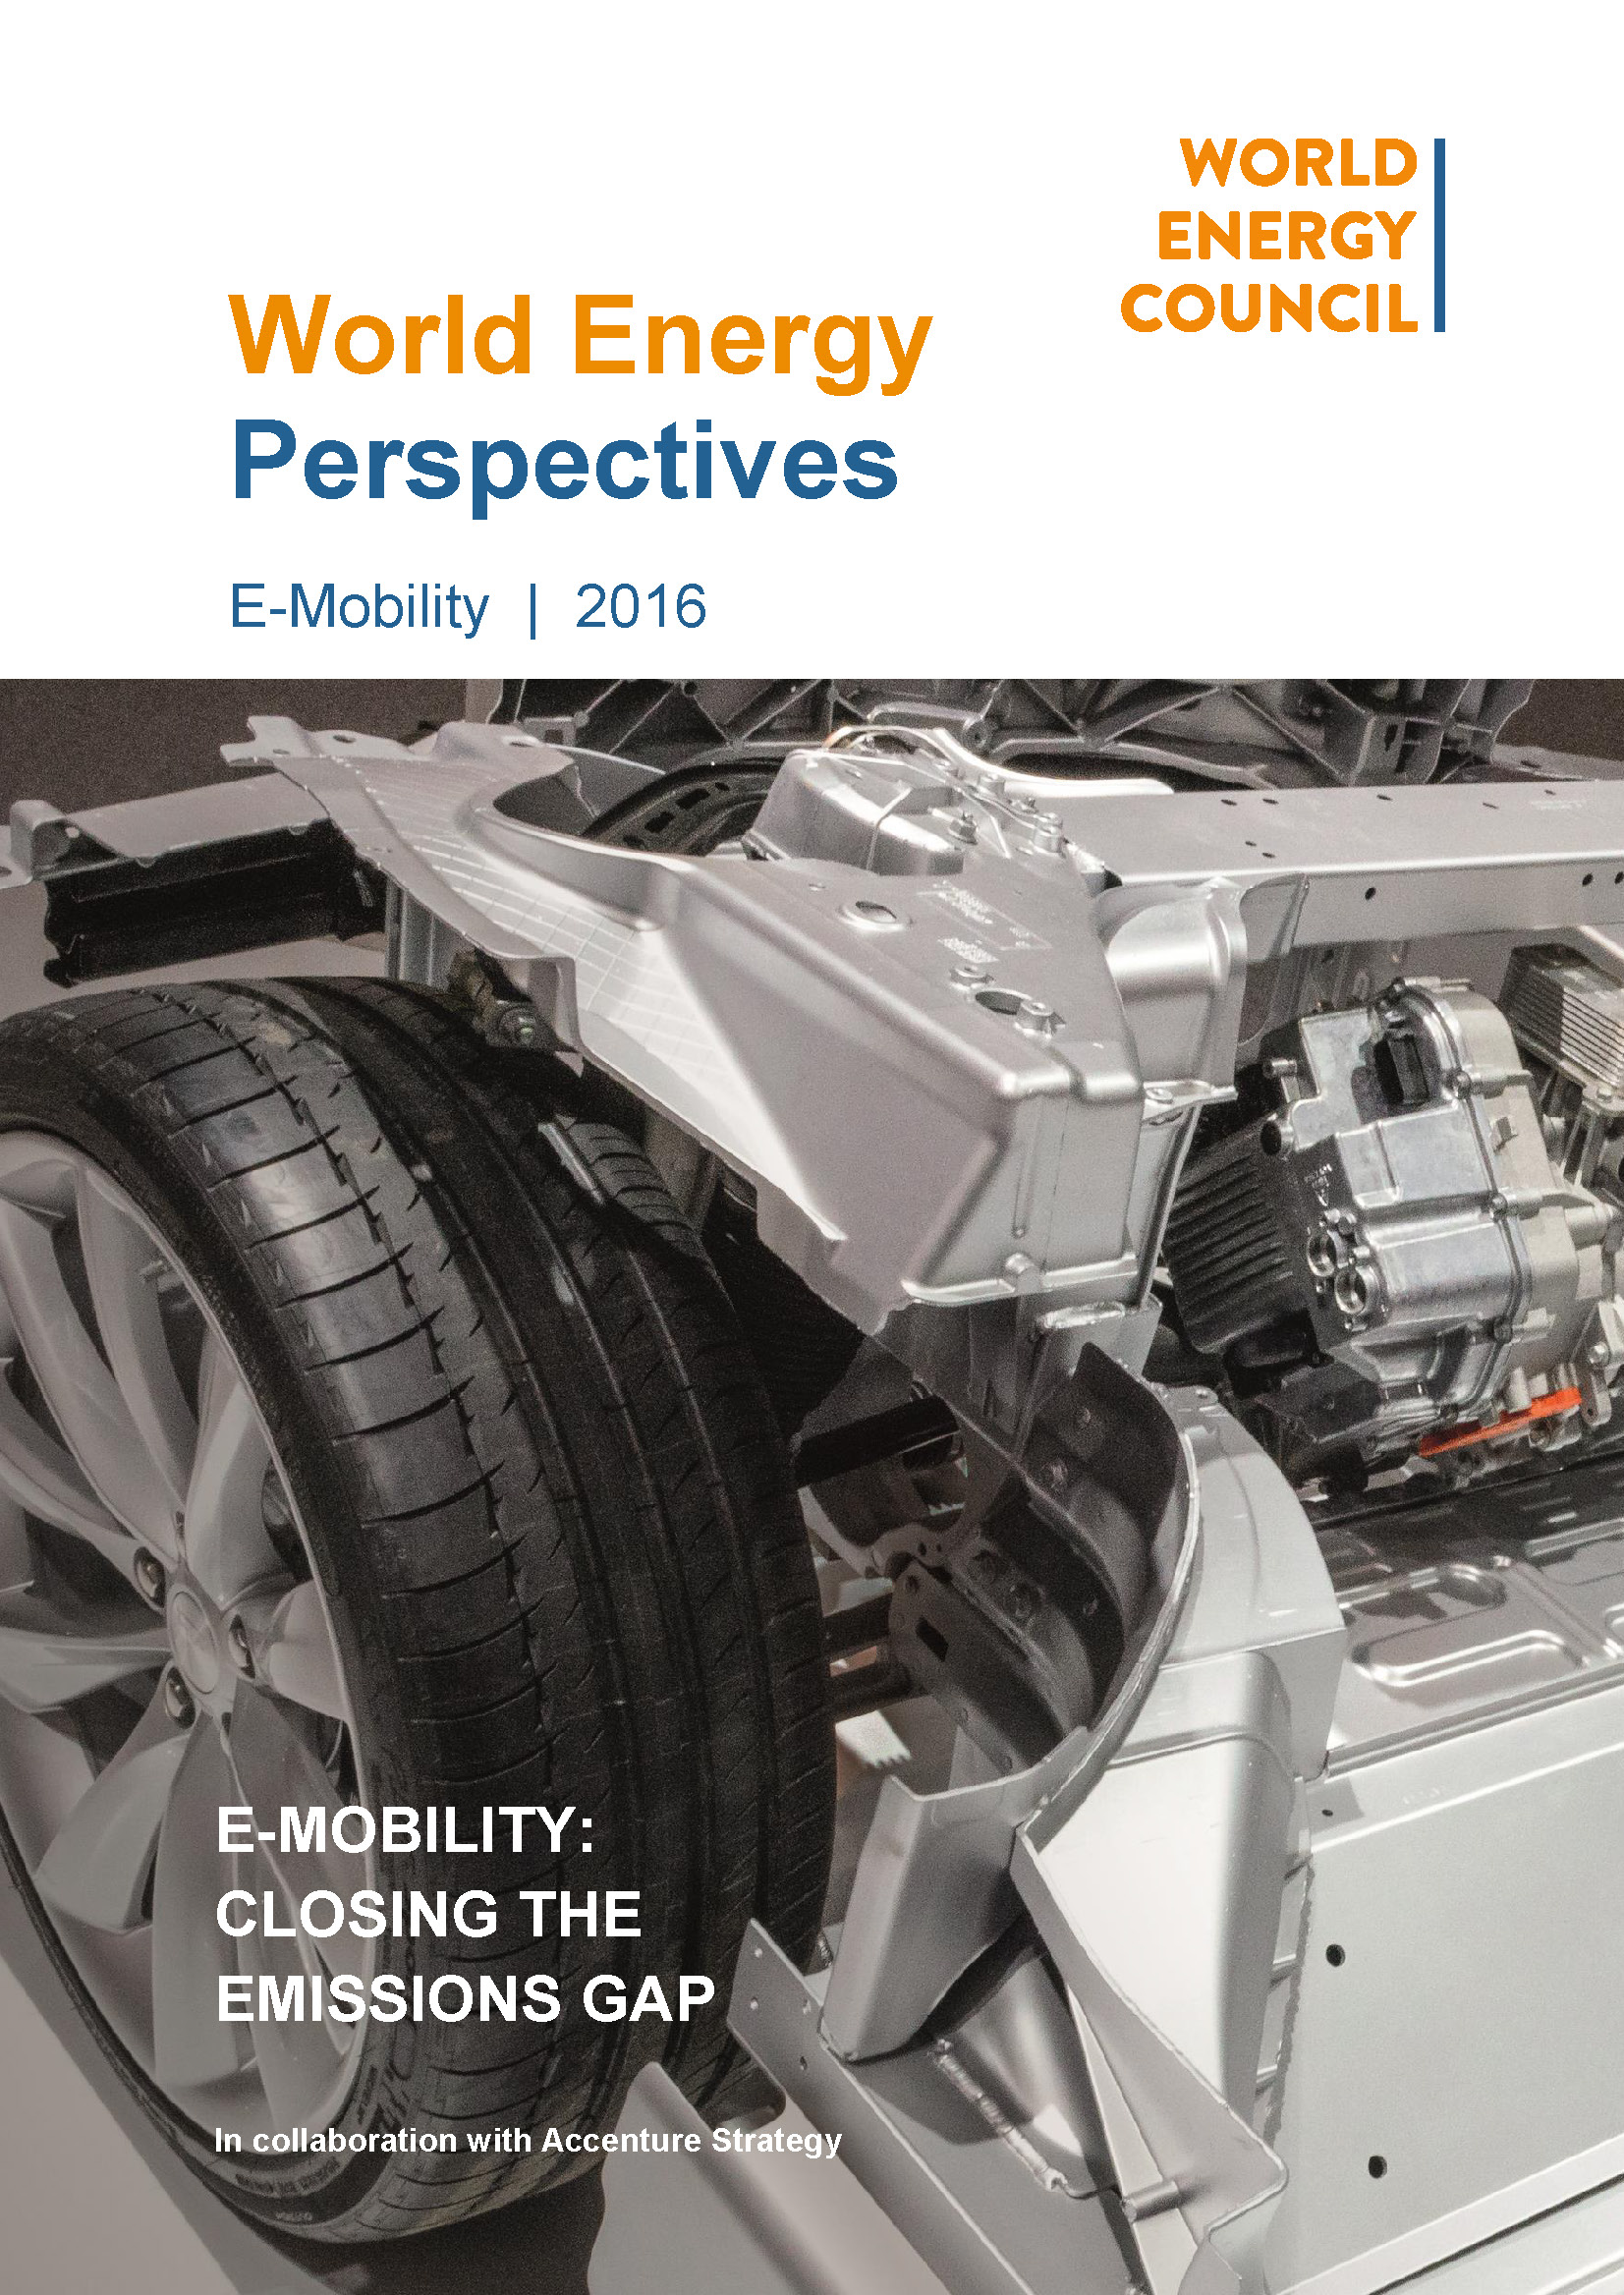 e-mobility: closing the emissions gap | world energy council